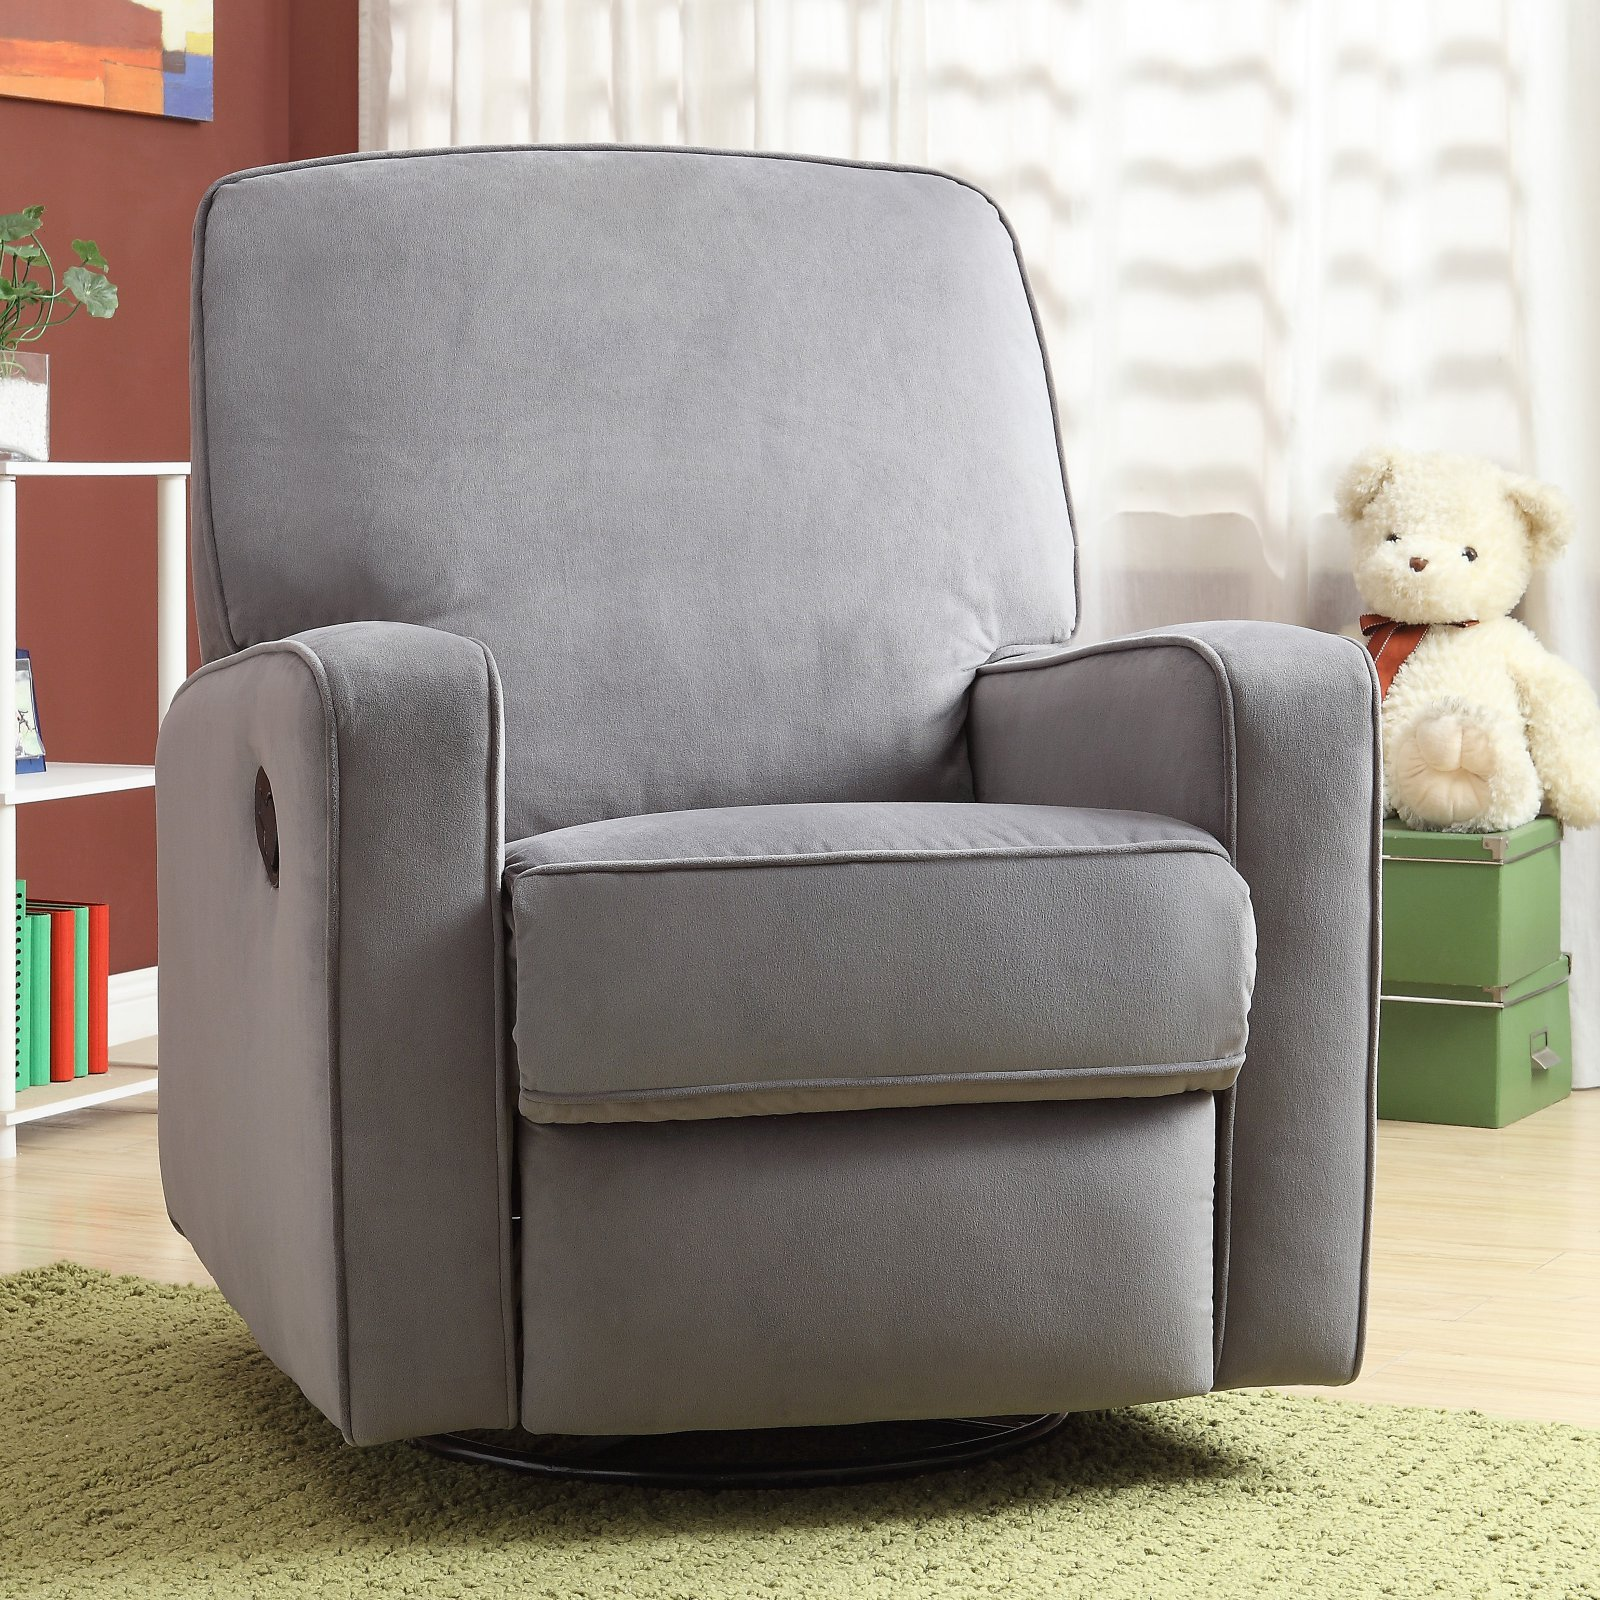 Home Meridian International Sutton Swivel Glider Recliner Stella Zen, Gray